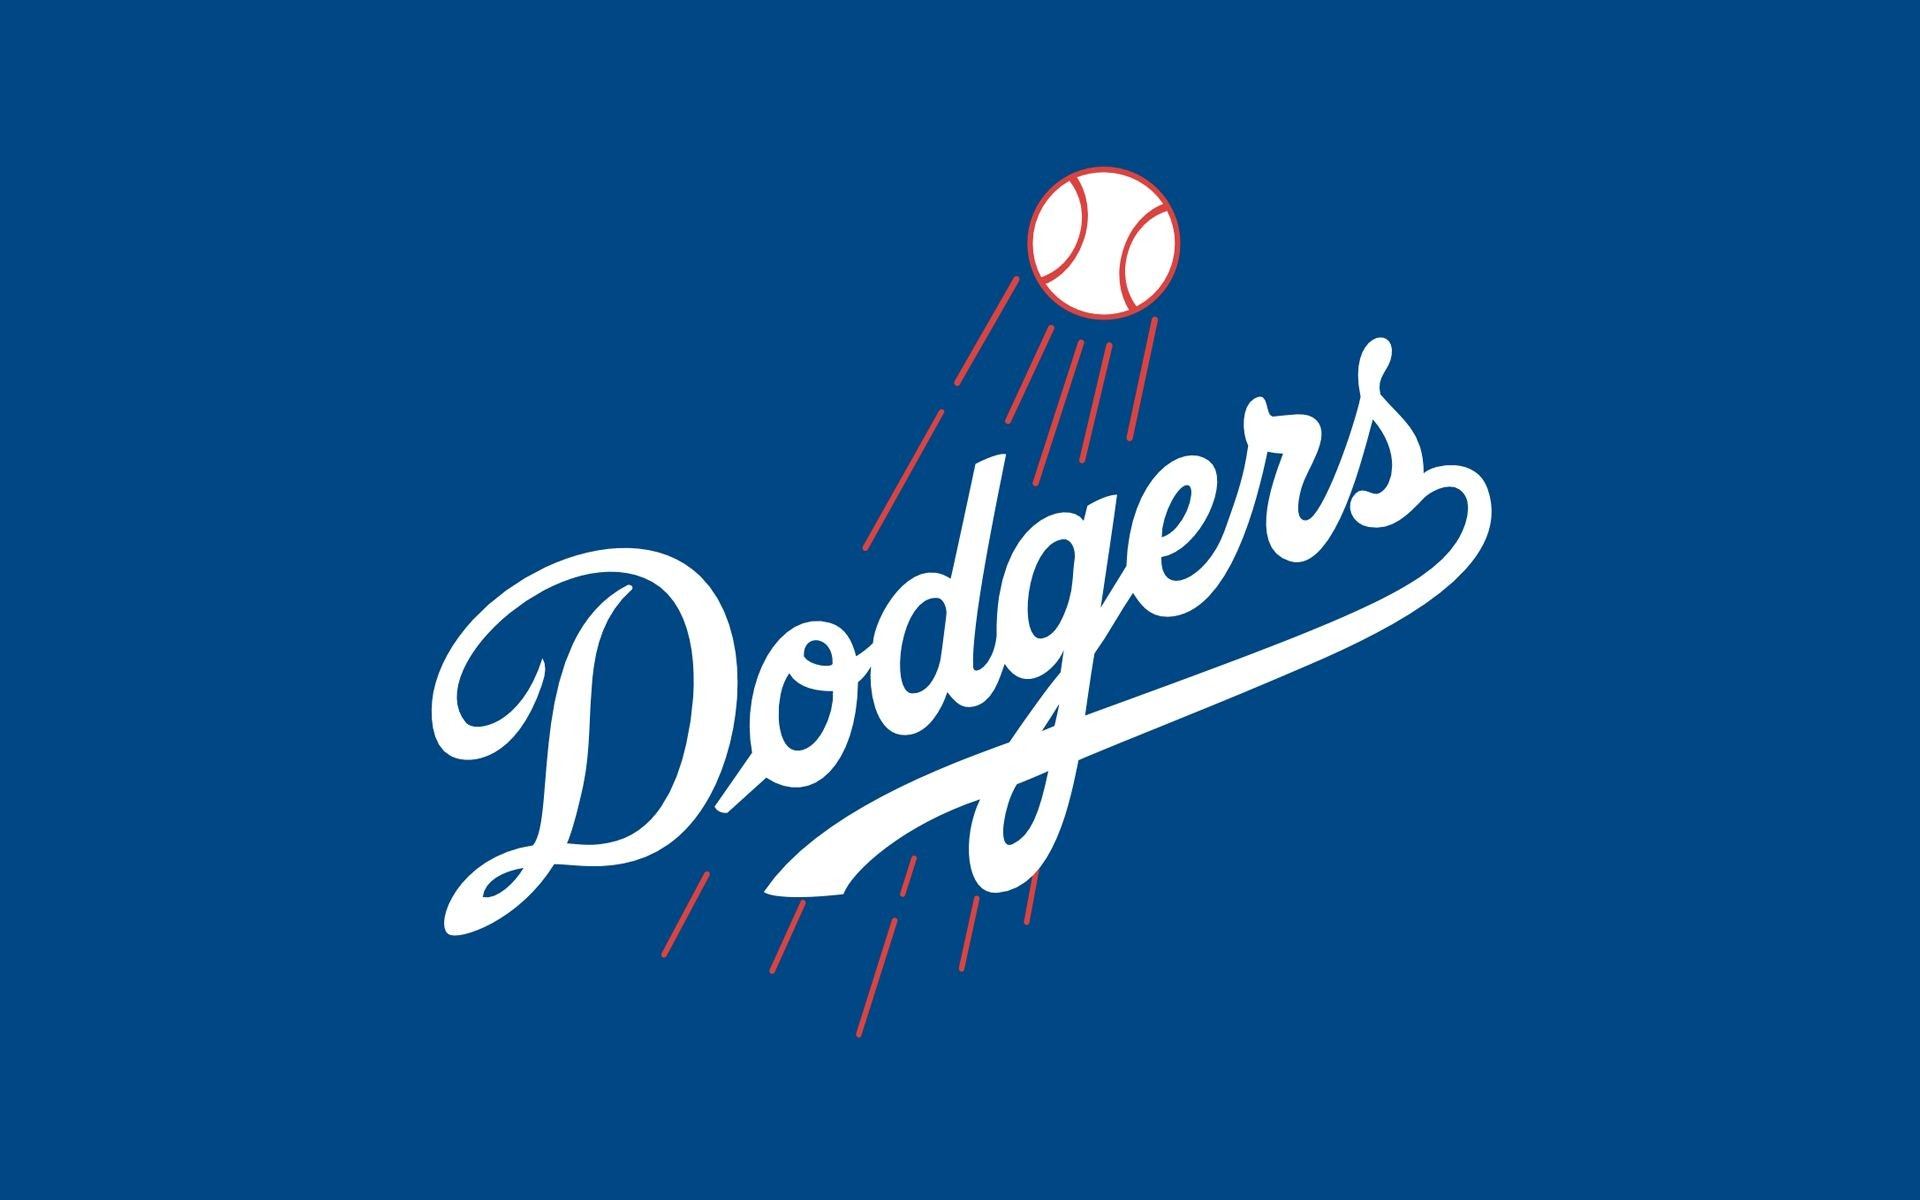 dodgers wallpaper   hd backgrounds  desktop  mobile devices